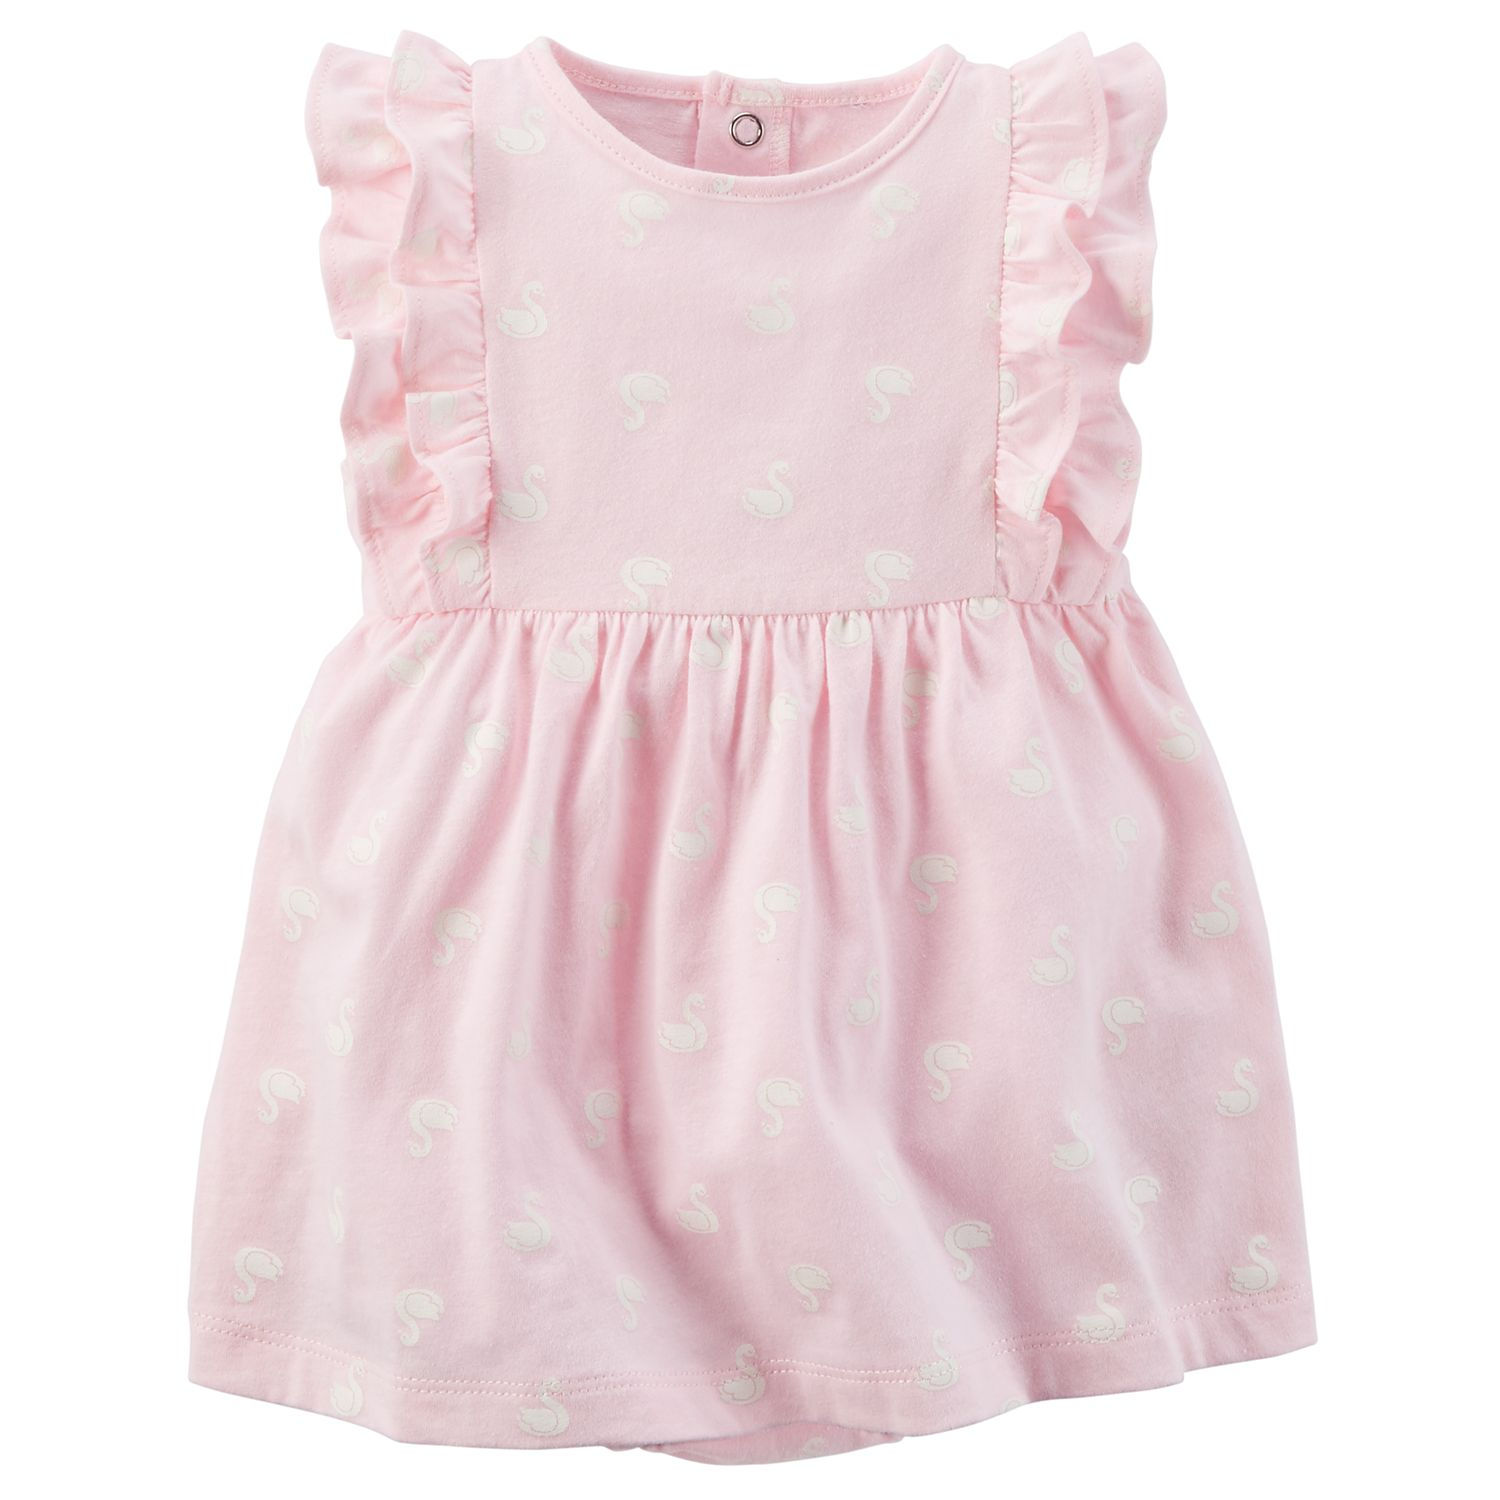 Girls Carter s Baby Dresses Clothing